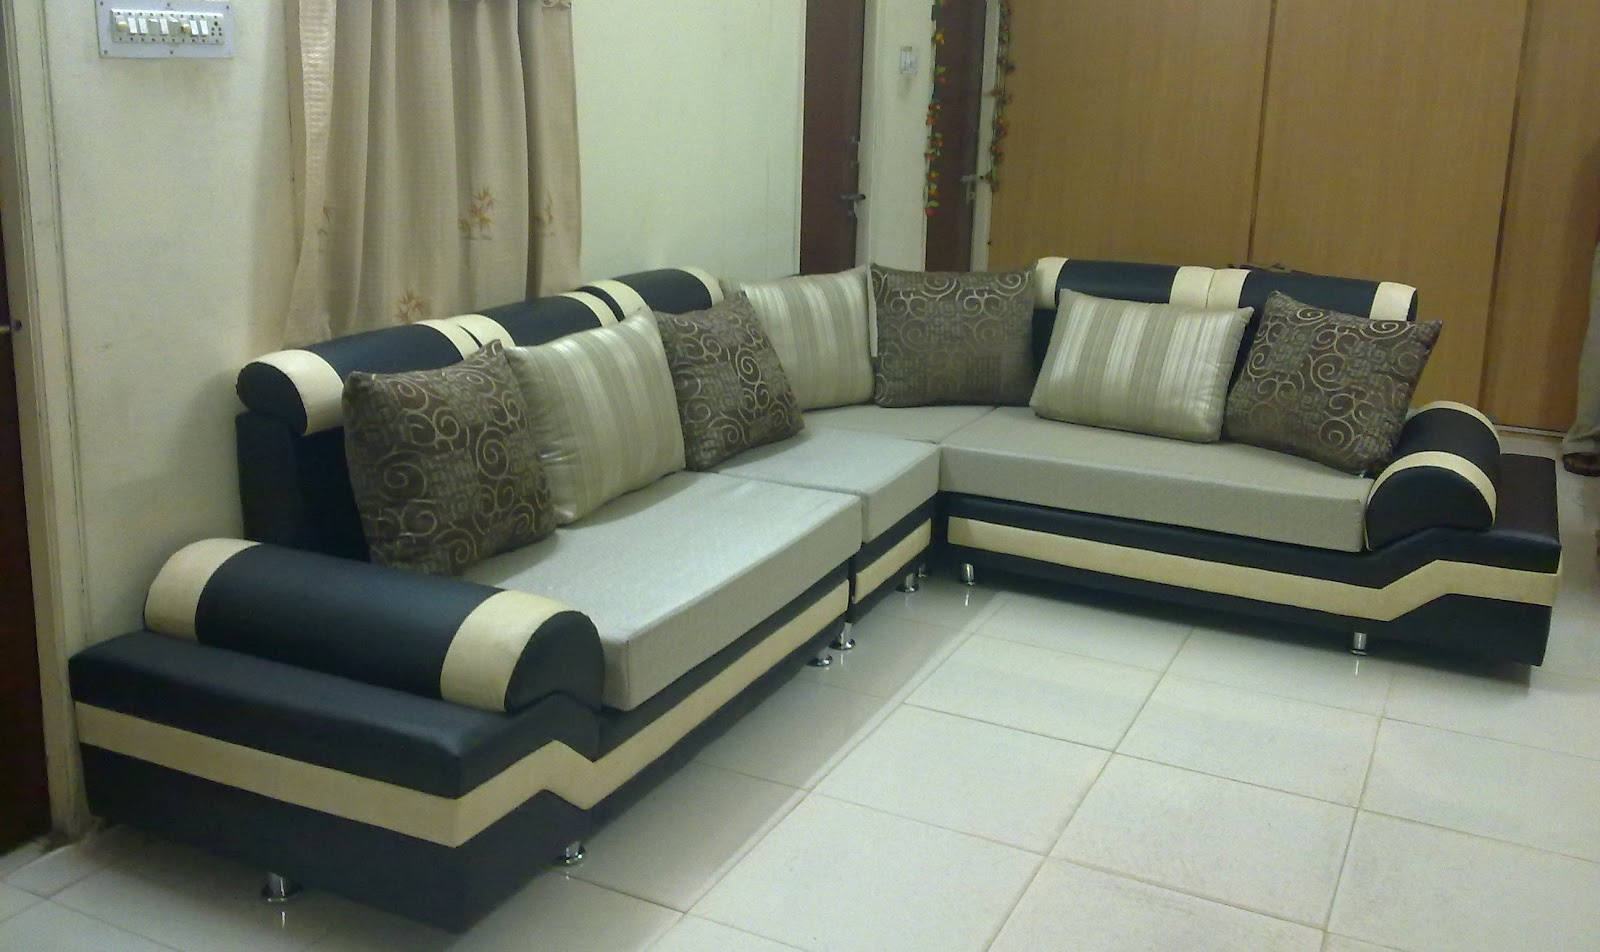 Sofa Set For Sale Hyderabad Union Furniture In Hyderabad And Secunderabad Silver